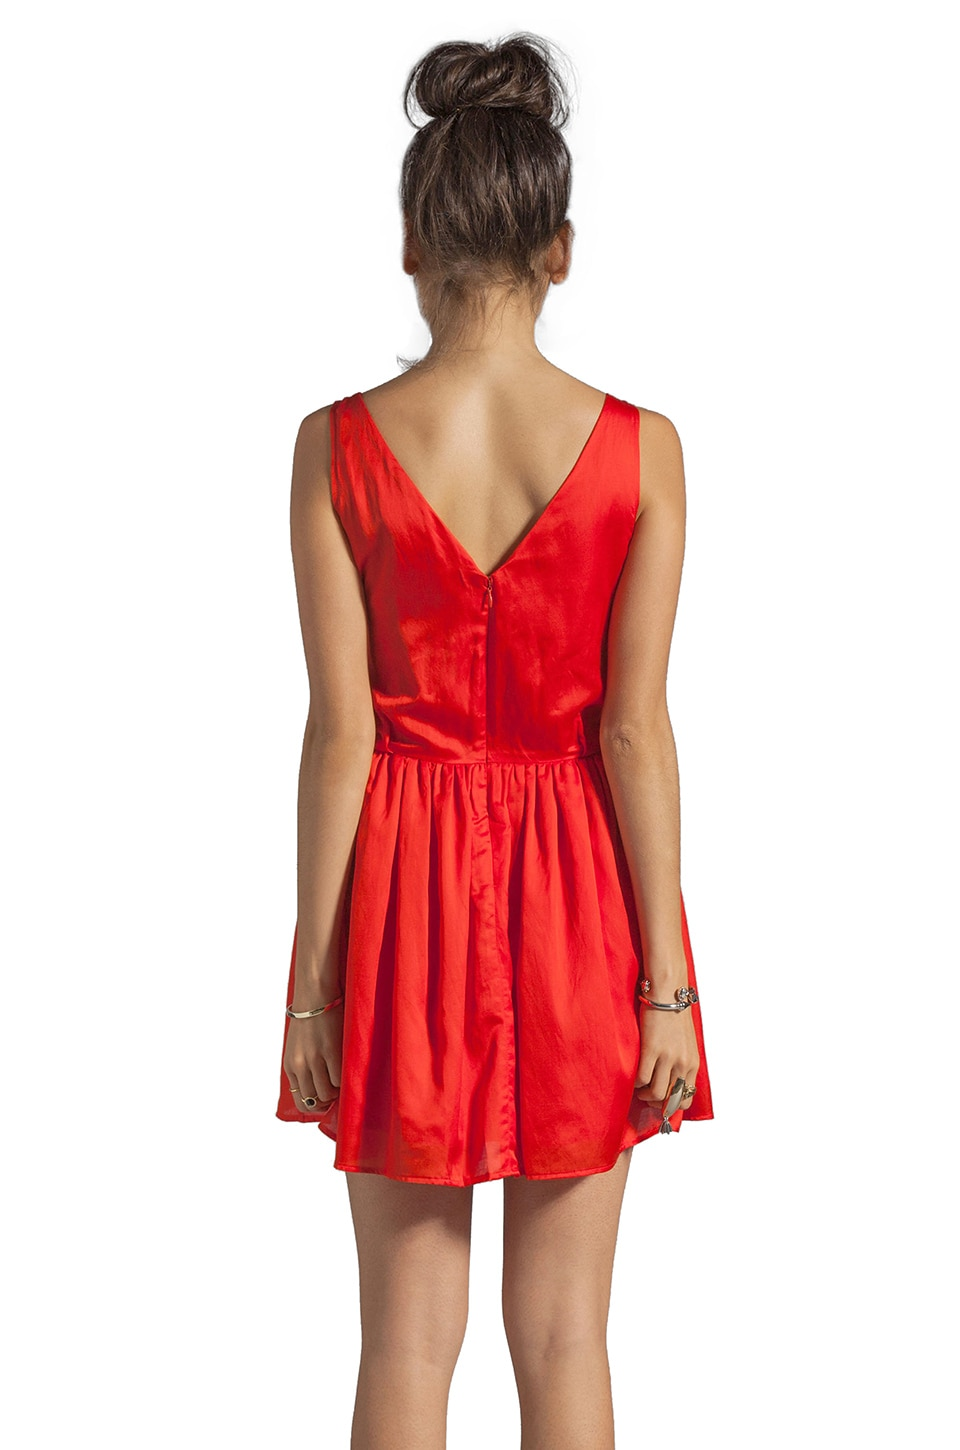 PJK Patterson J. Kincaid Patterson J. Kincaid x the man repeller Kramer Dress in Fiery Red